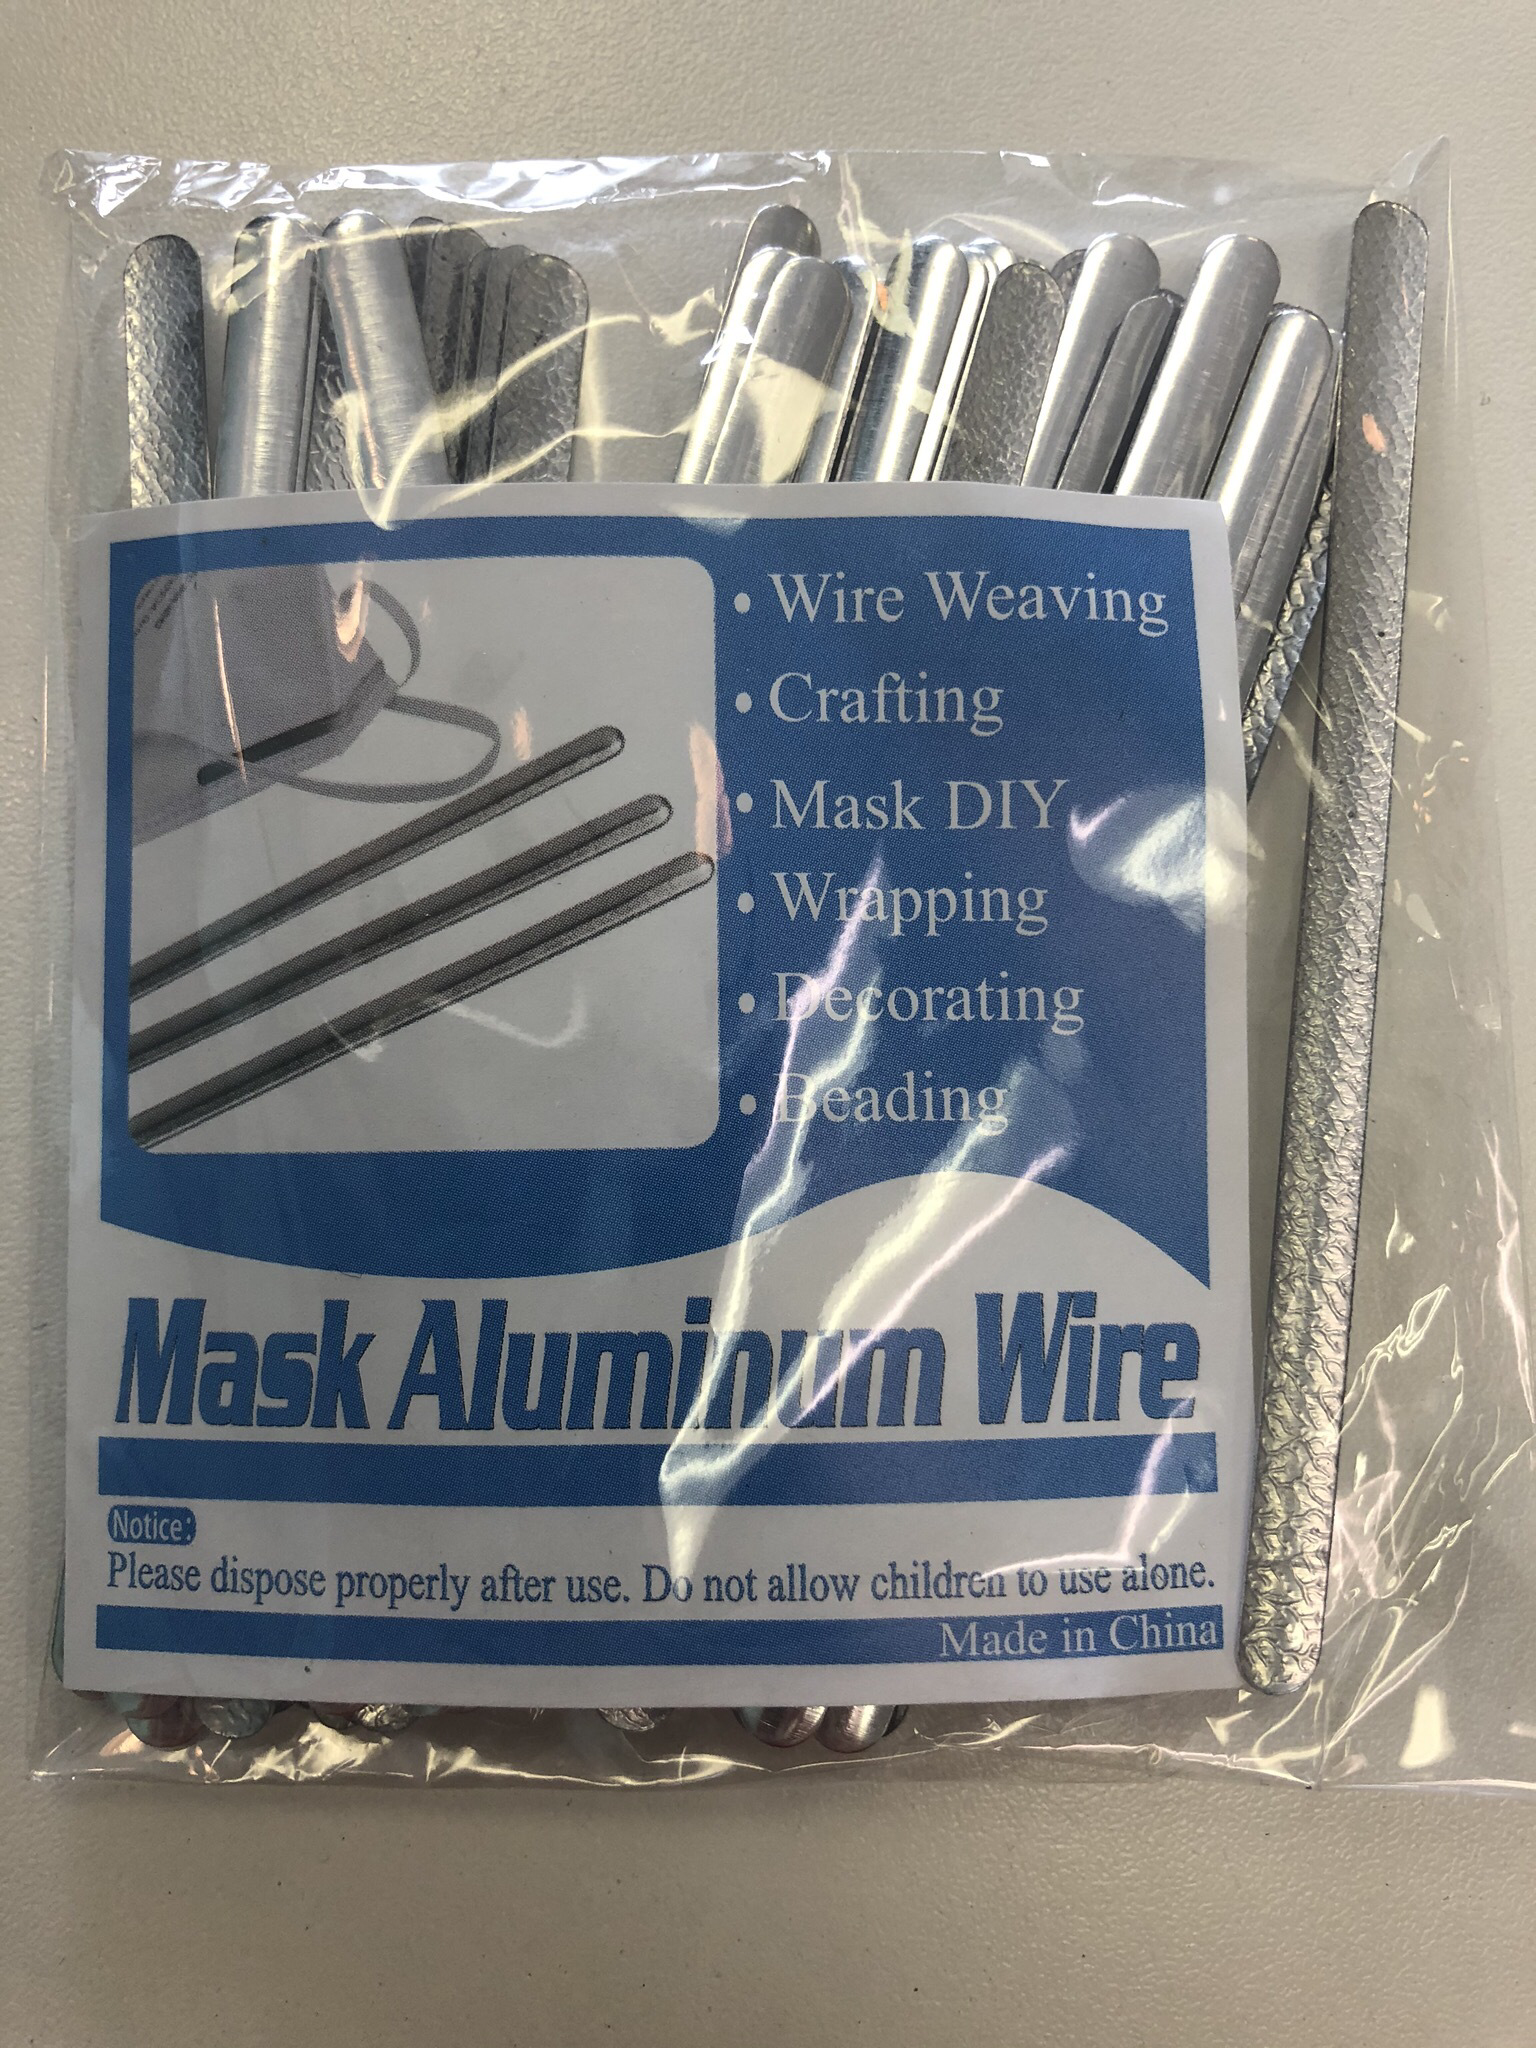 Flexible Mask Wires - 20 Pack 55900